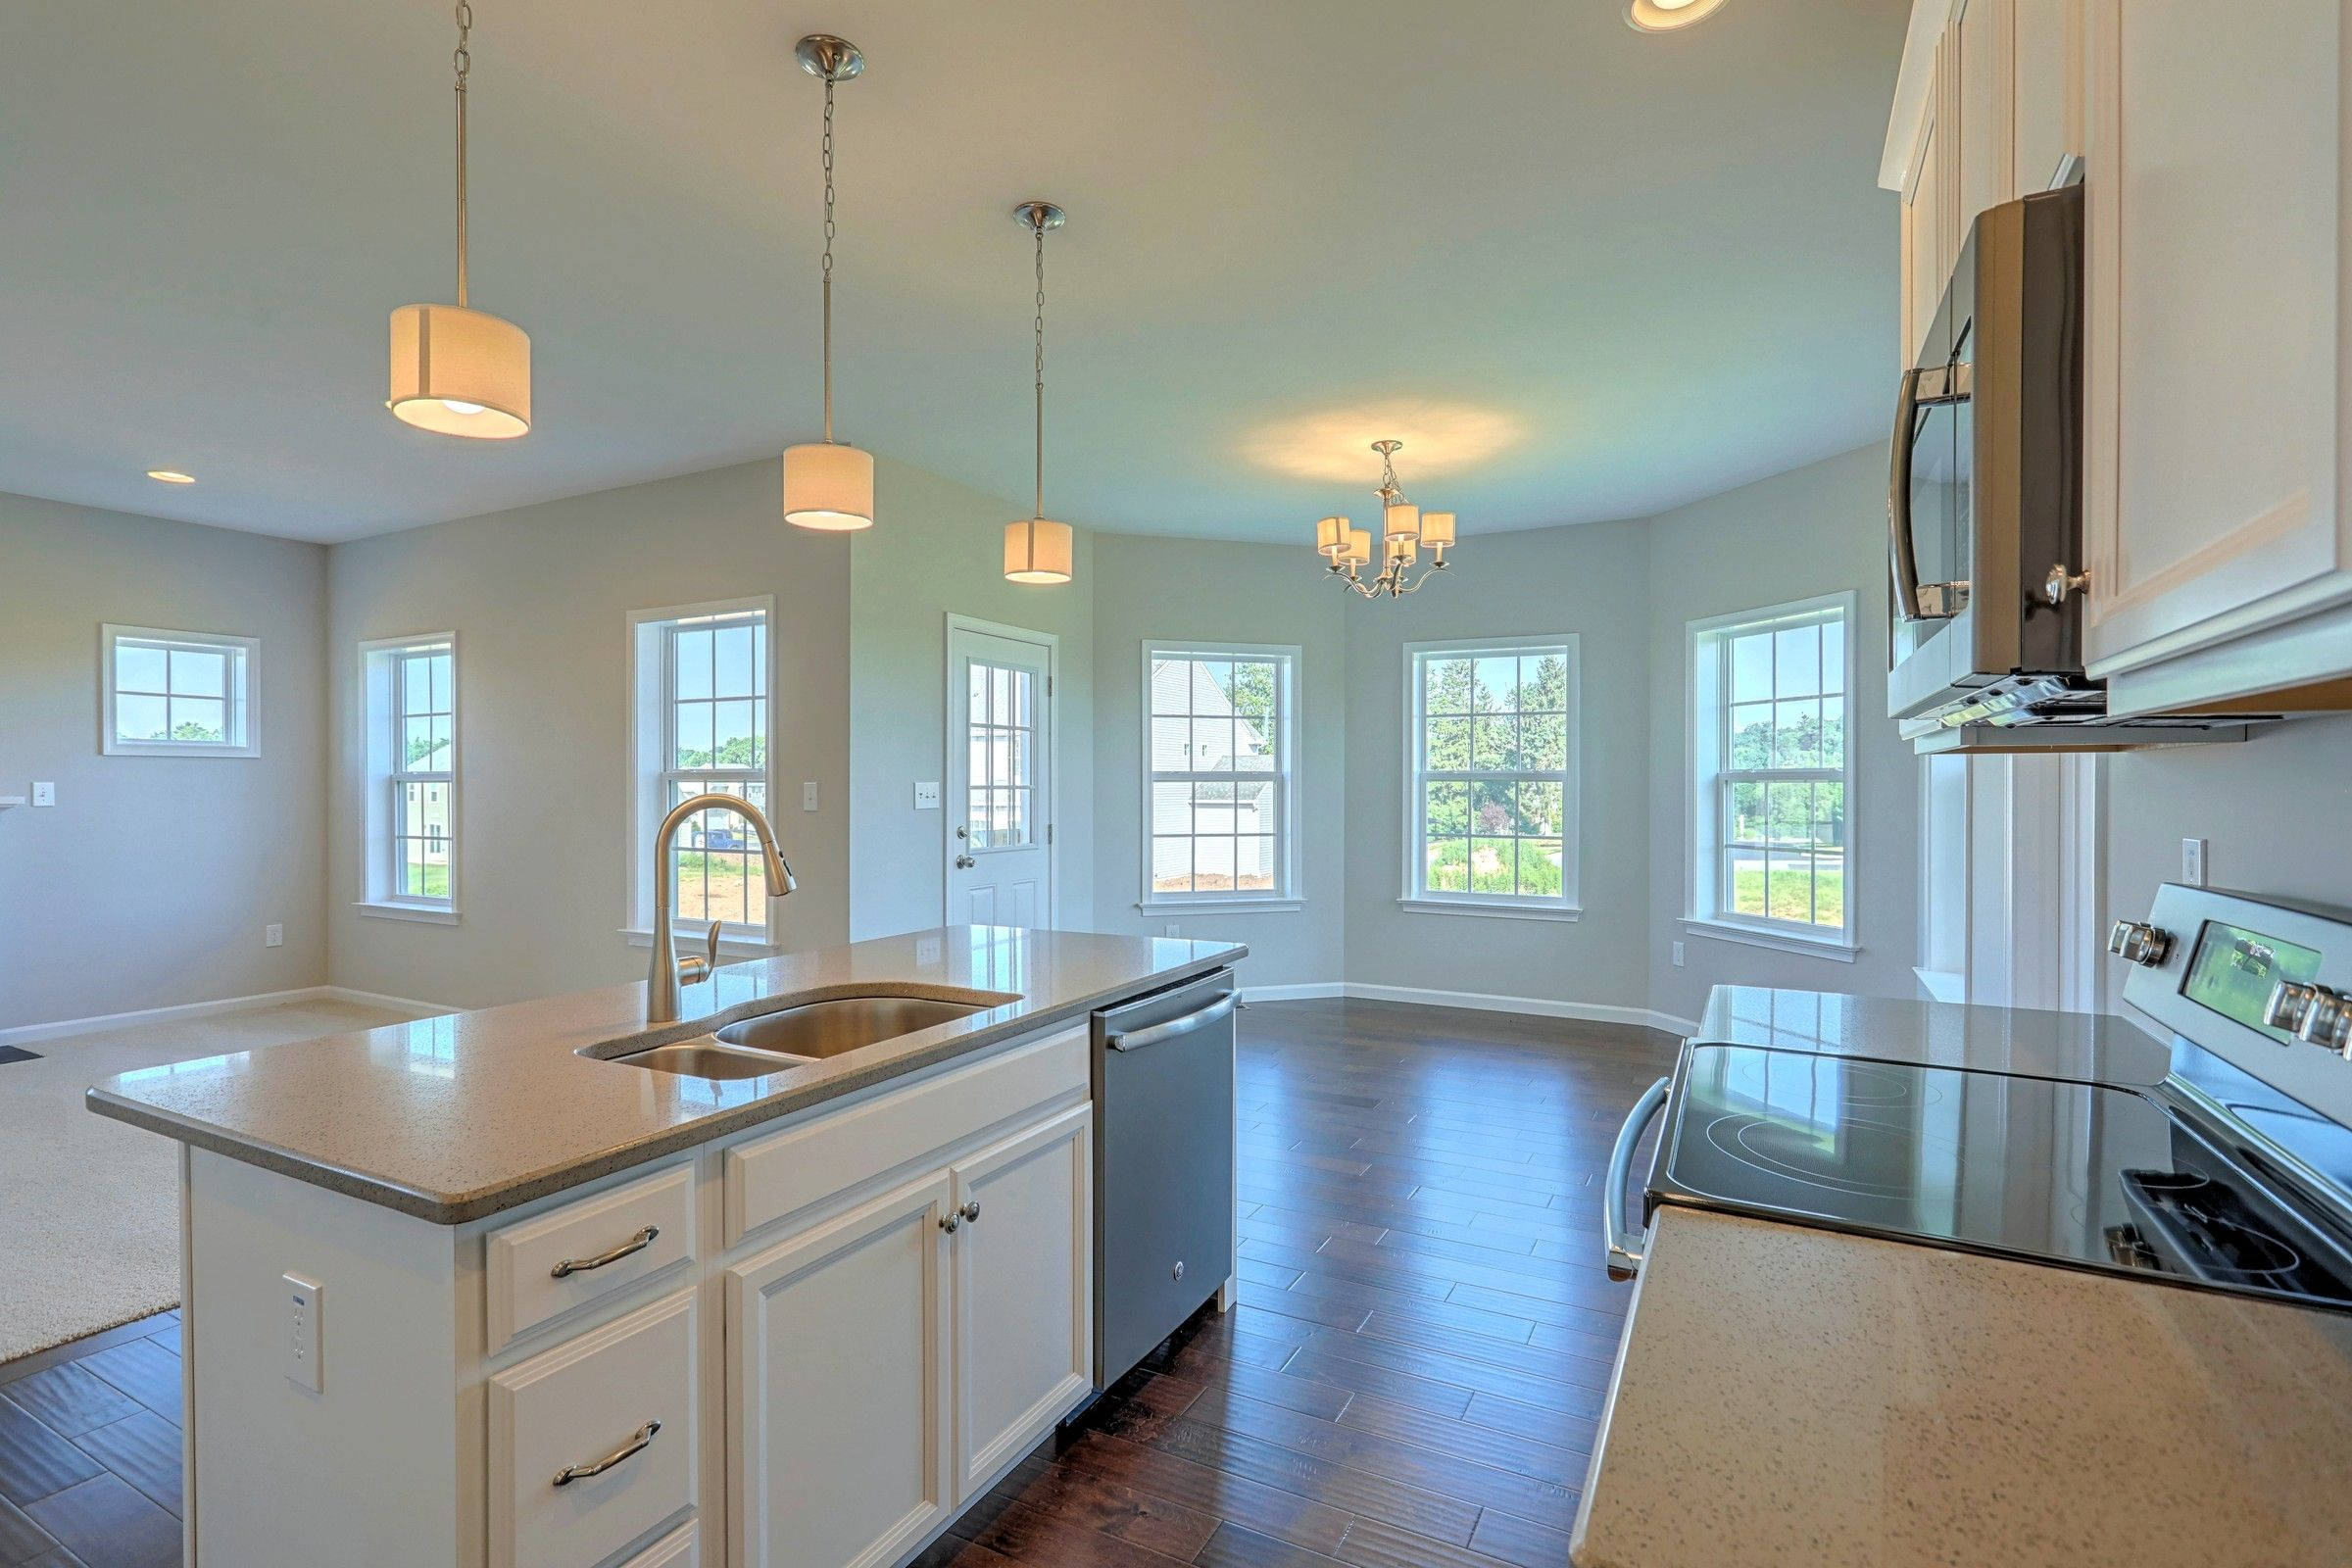 Kitchen featured in the Brentwood Vintage By Keystone Custom Homes in York, PA